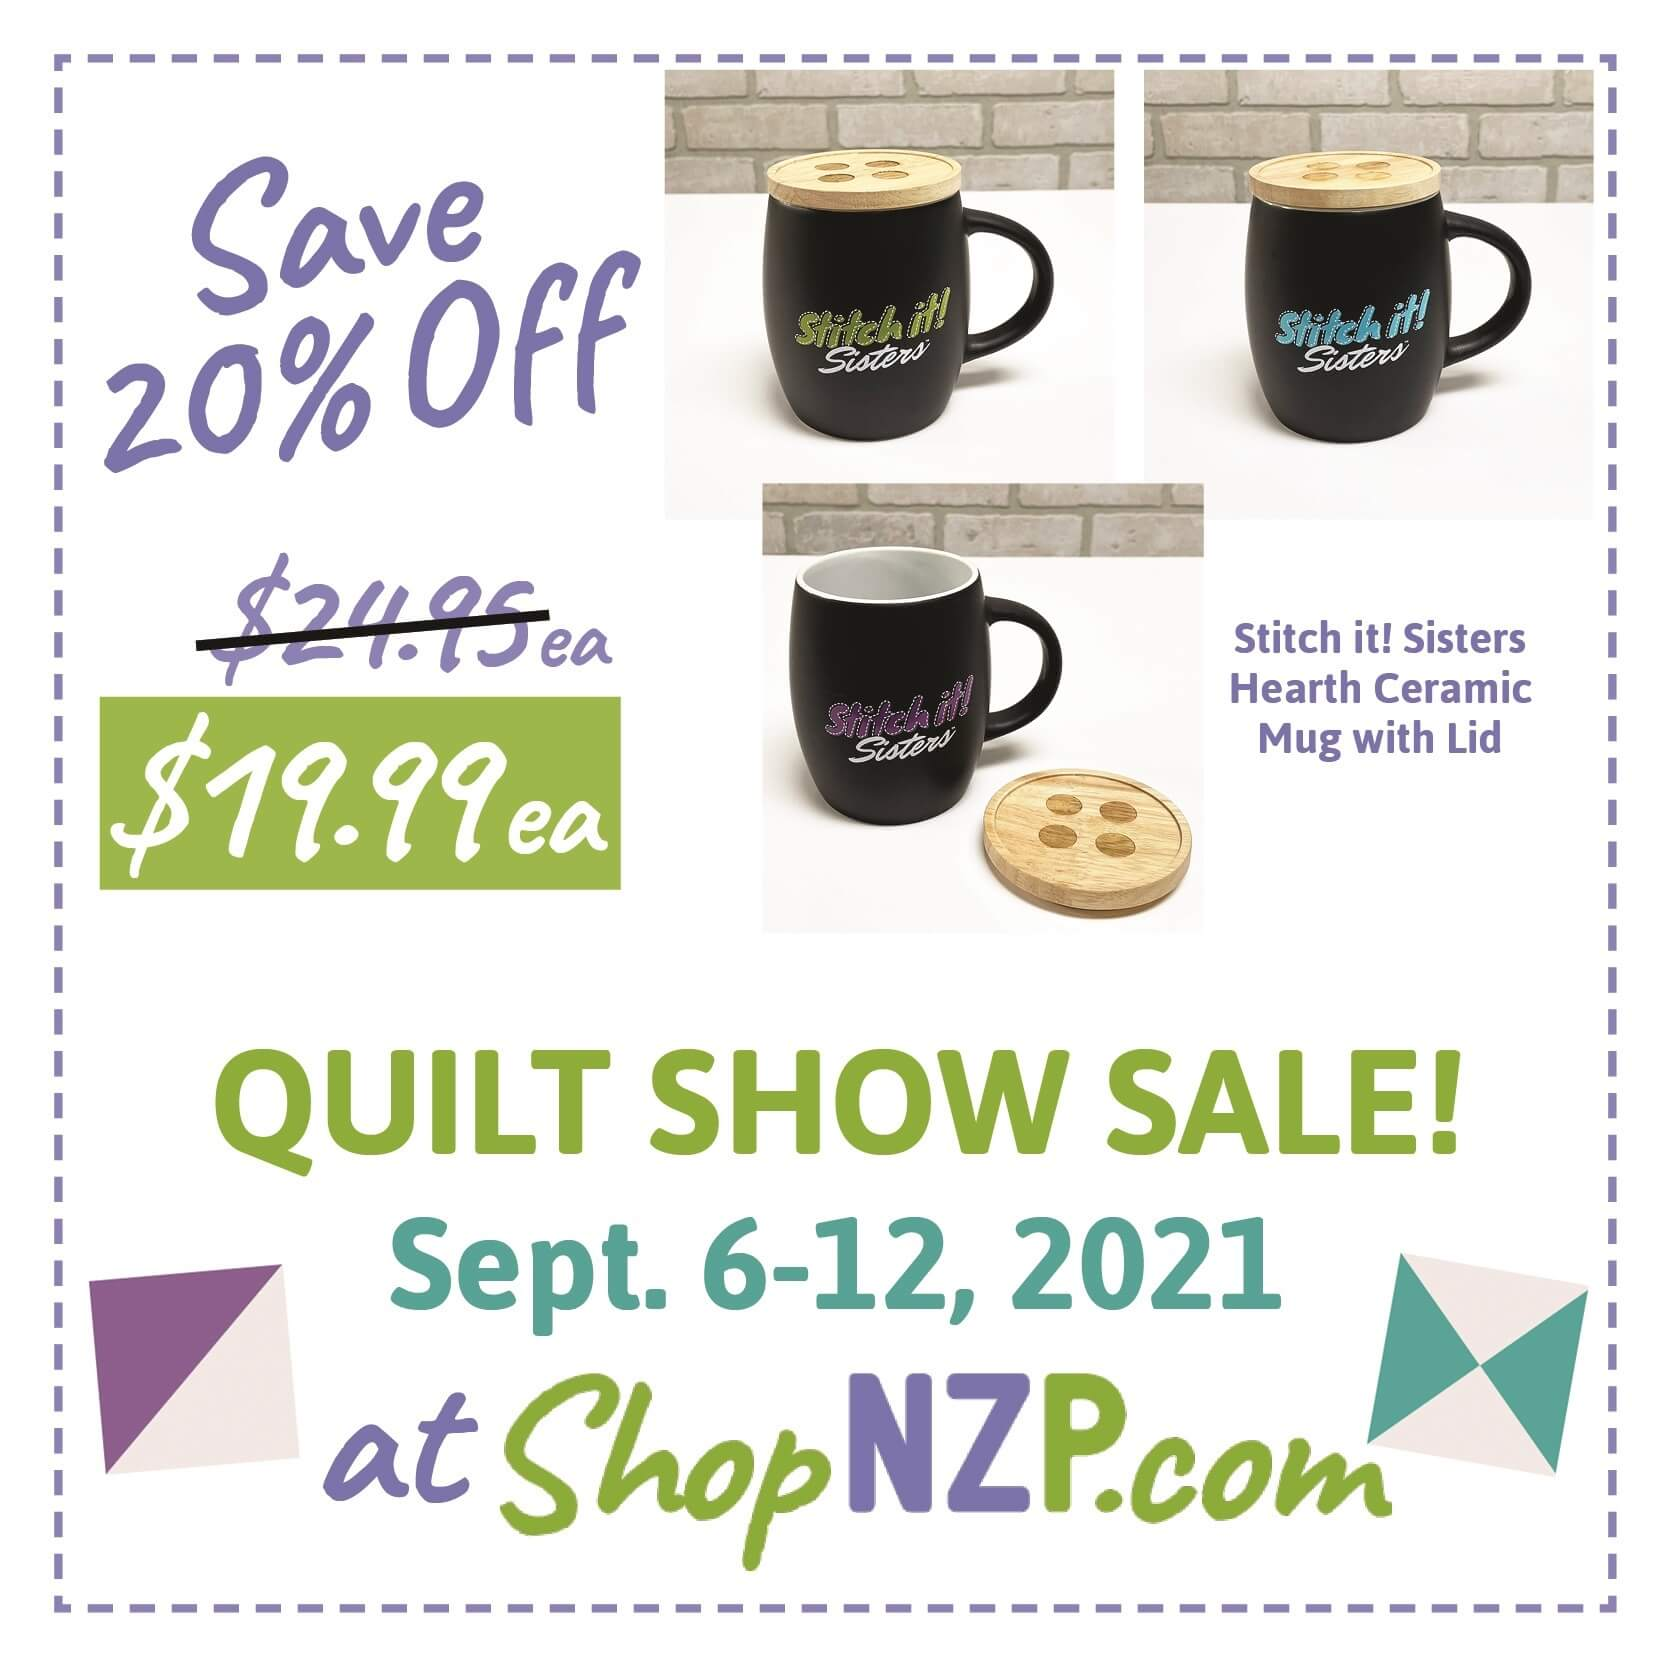 Save 20 Percent off Stitch it! Sisters Hearth Ceramic Mug with Lid at Nancy Zieman Productions at ShopNZP